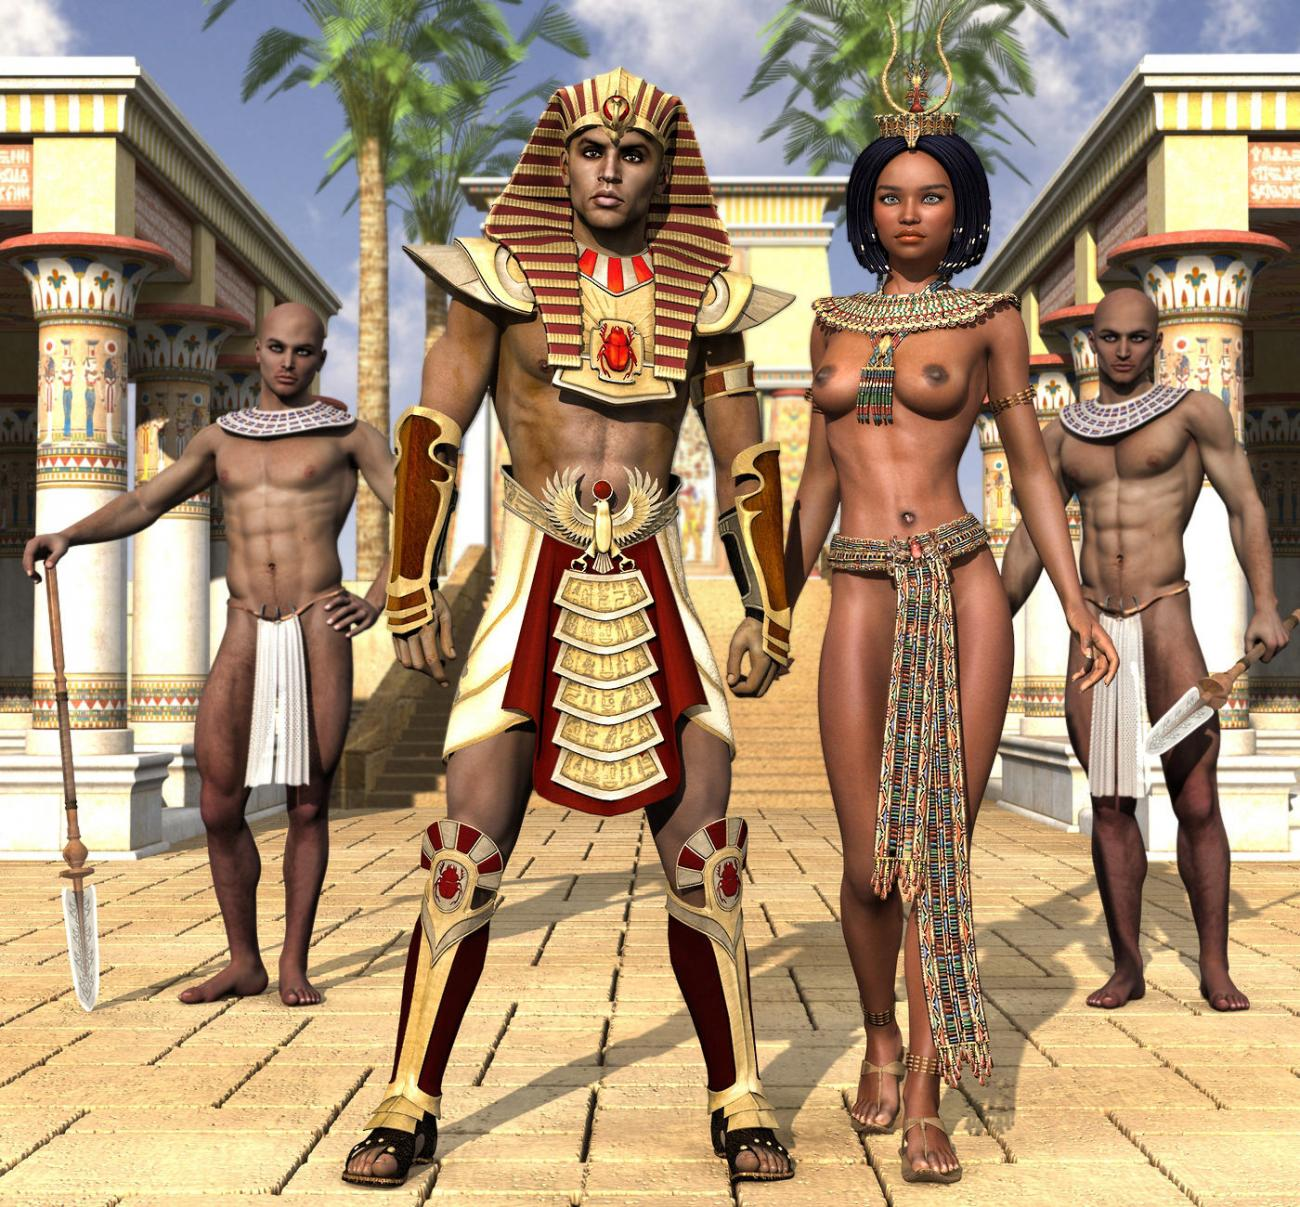 At Pharaoh's Court